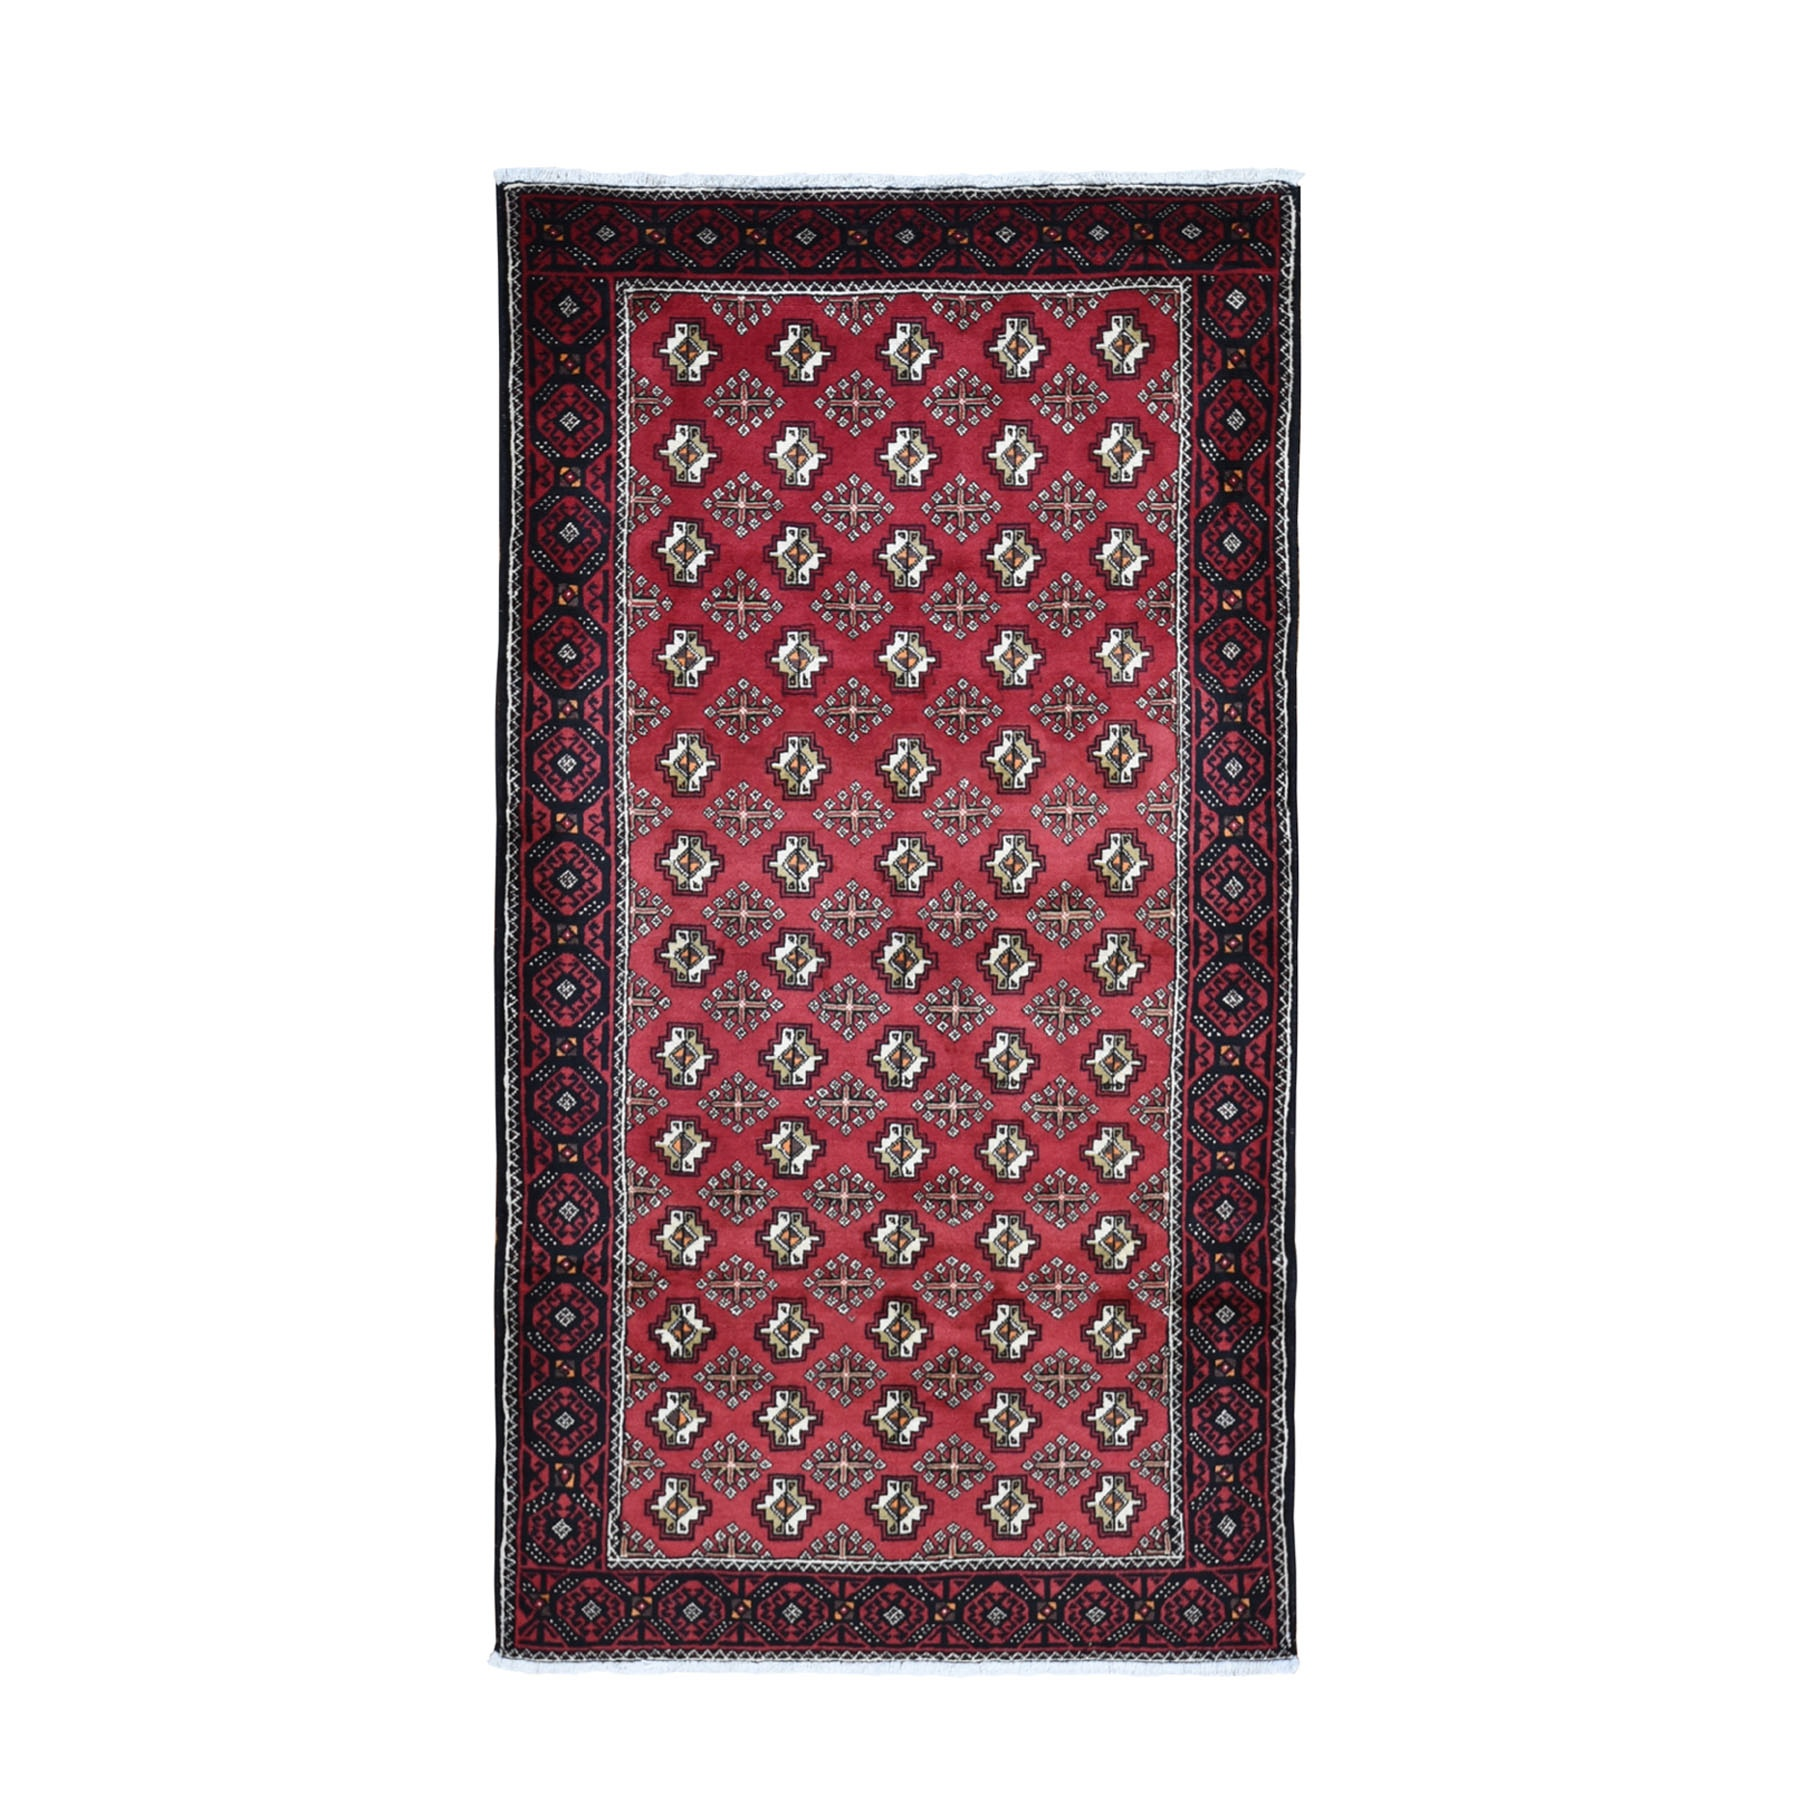 "4'4""x8'3"" Red Vintage Persian Baluch Geometric Design Exc Cond Pure Wool Hand Knotted Oriental Rug"